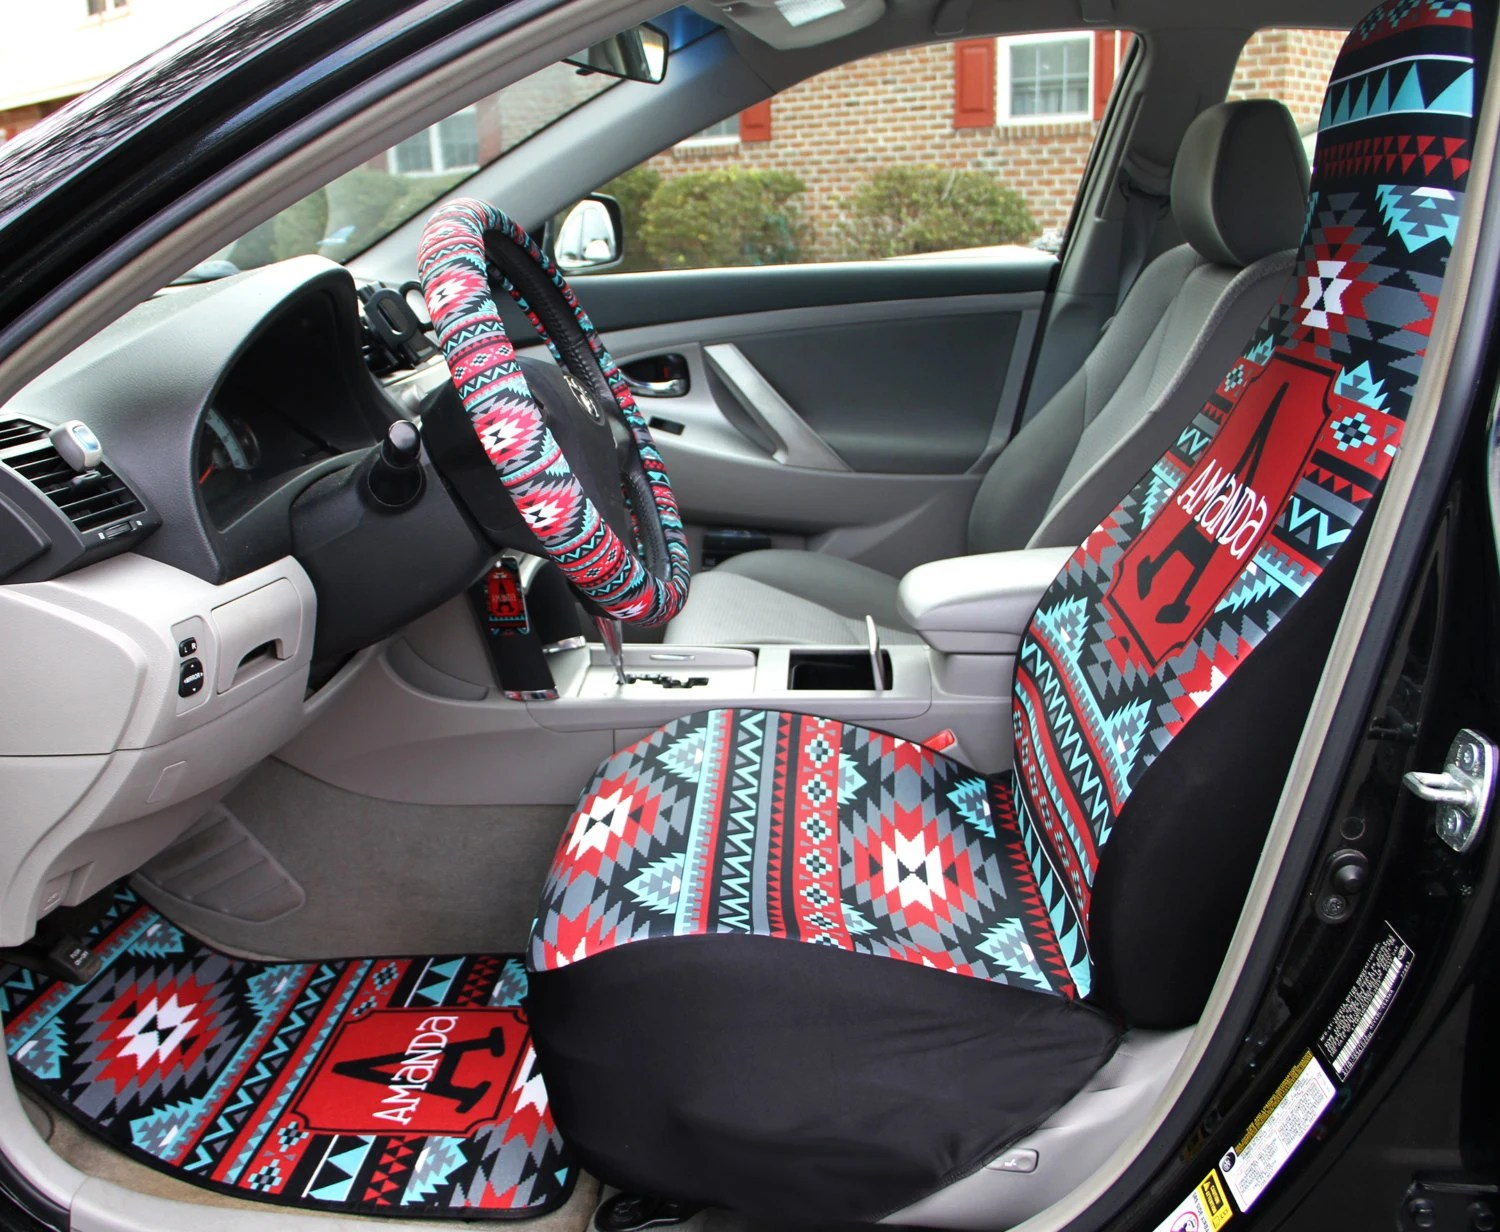 Seat covers for vehicle  Etsy